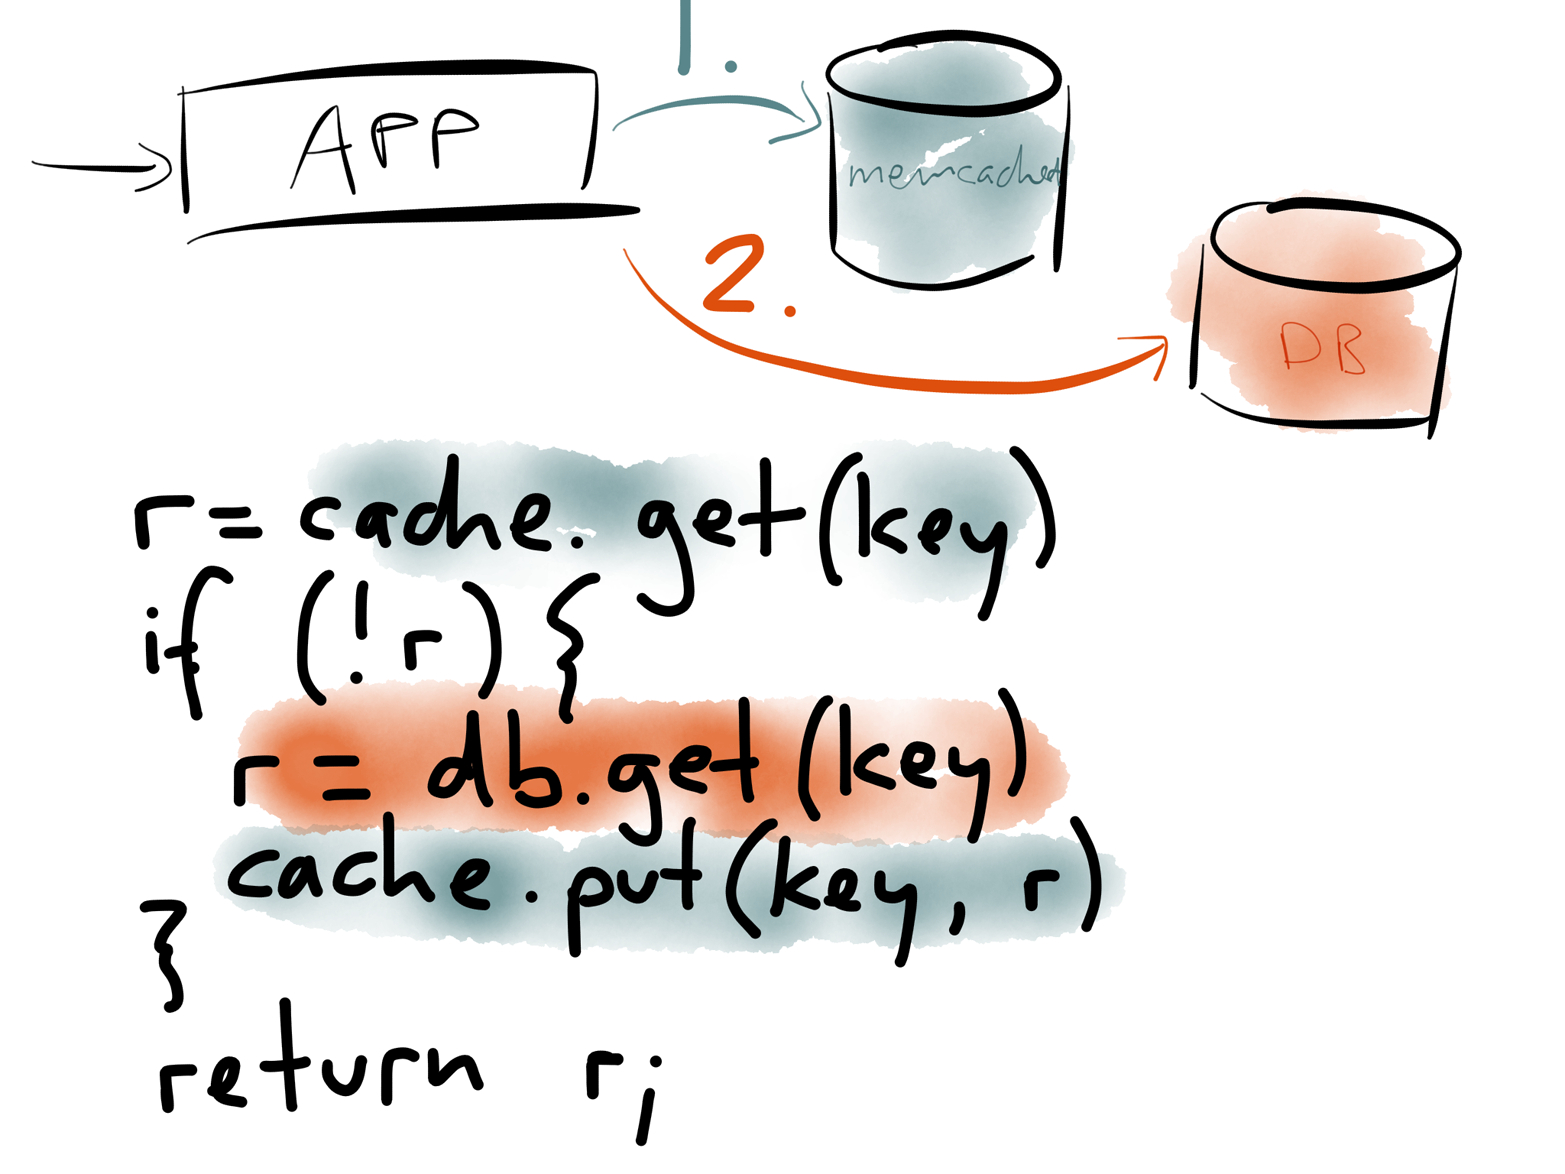 A read-through cache managed in application code.